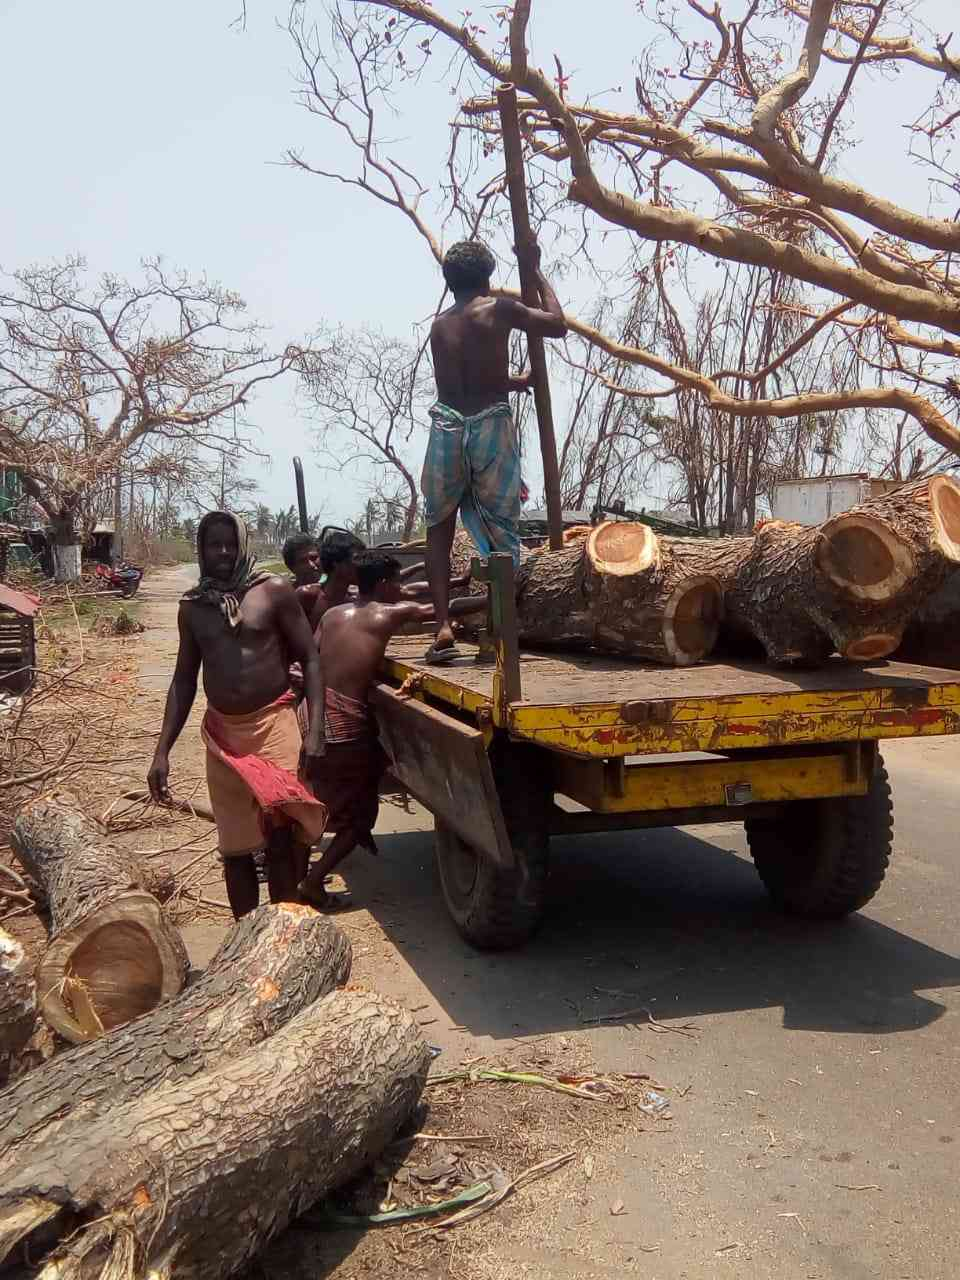 Workers clear trees felled by Cyclone Fani. (Photo credit: Gargy Satapathy).